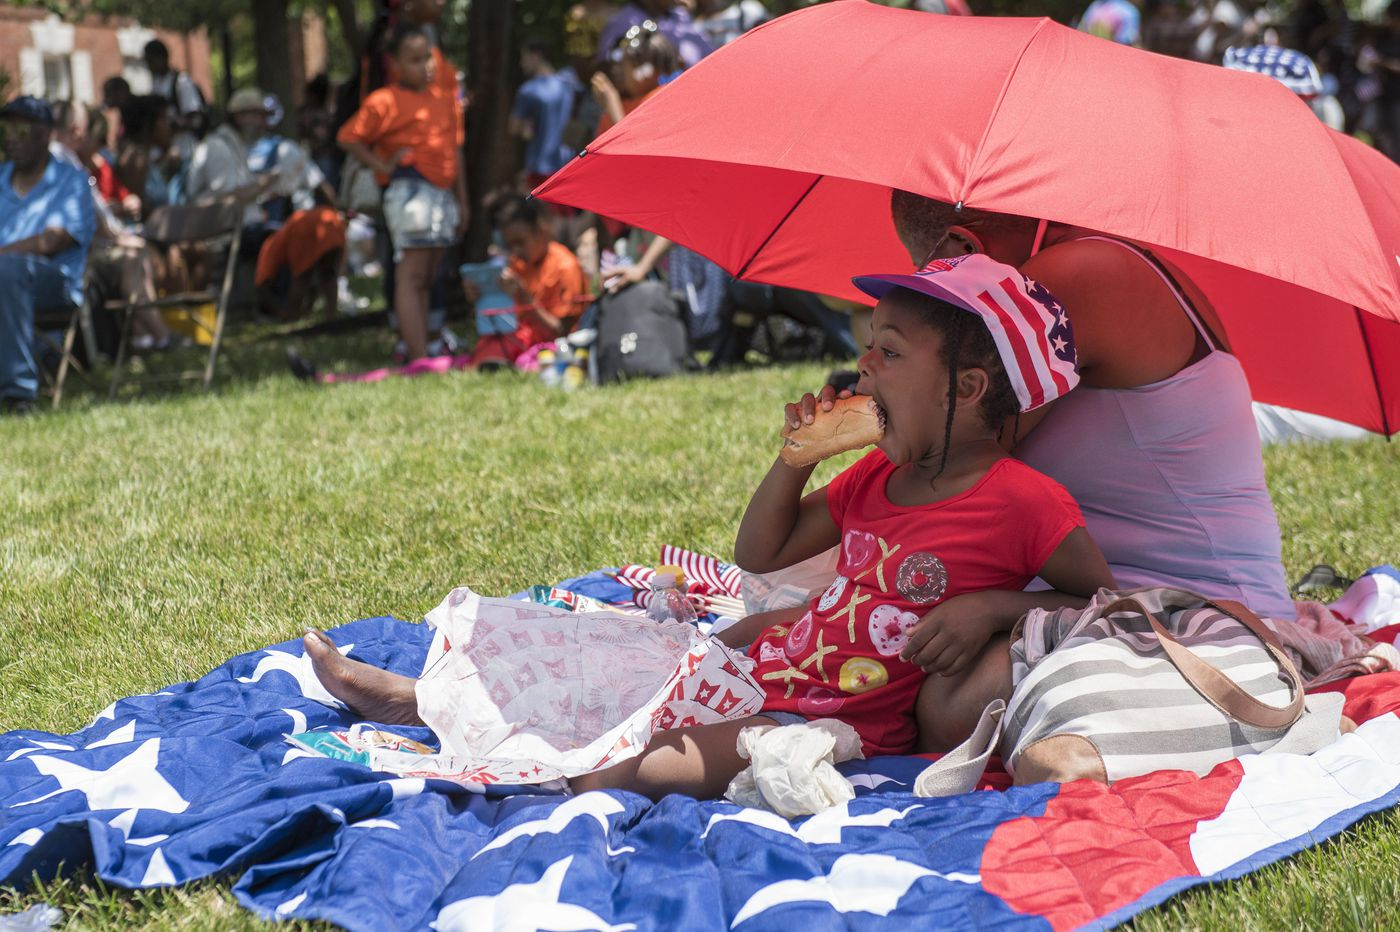 July 4th travel in Philly: Road closures, SEPTA, traffic and parking